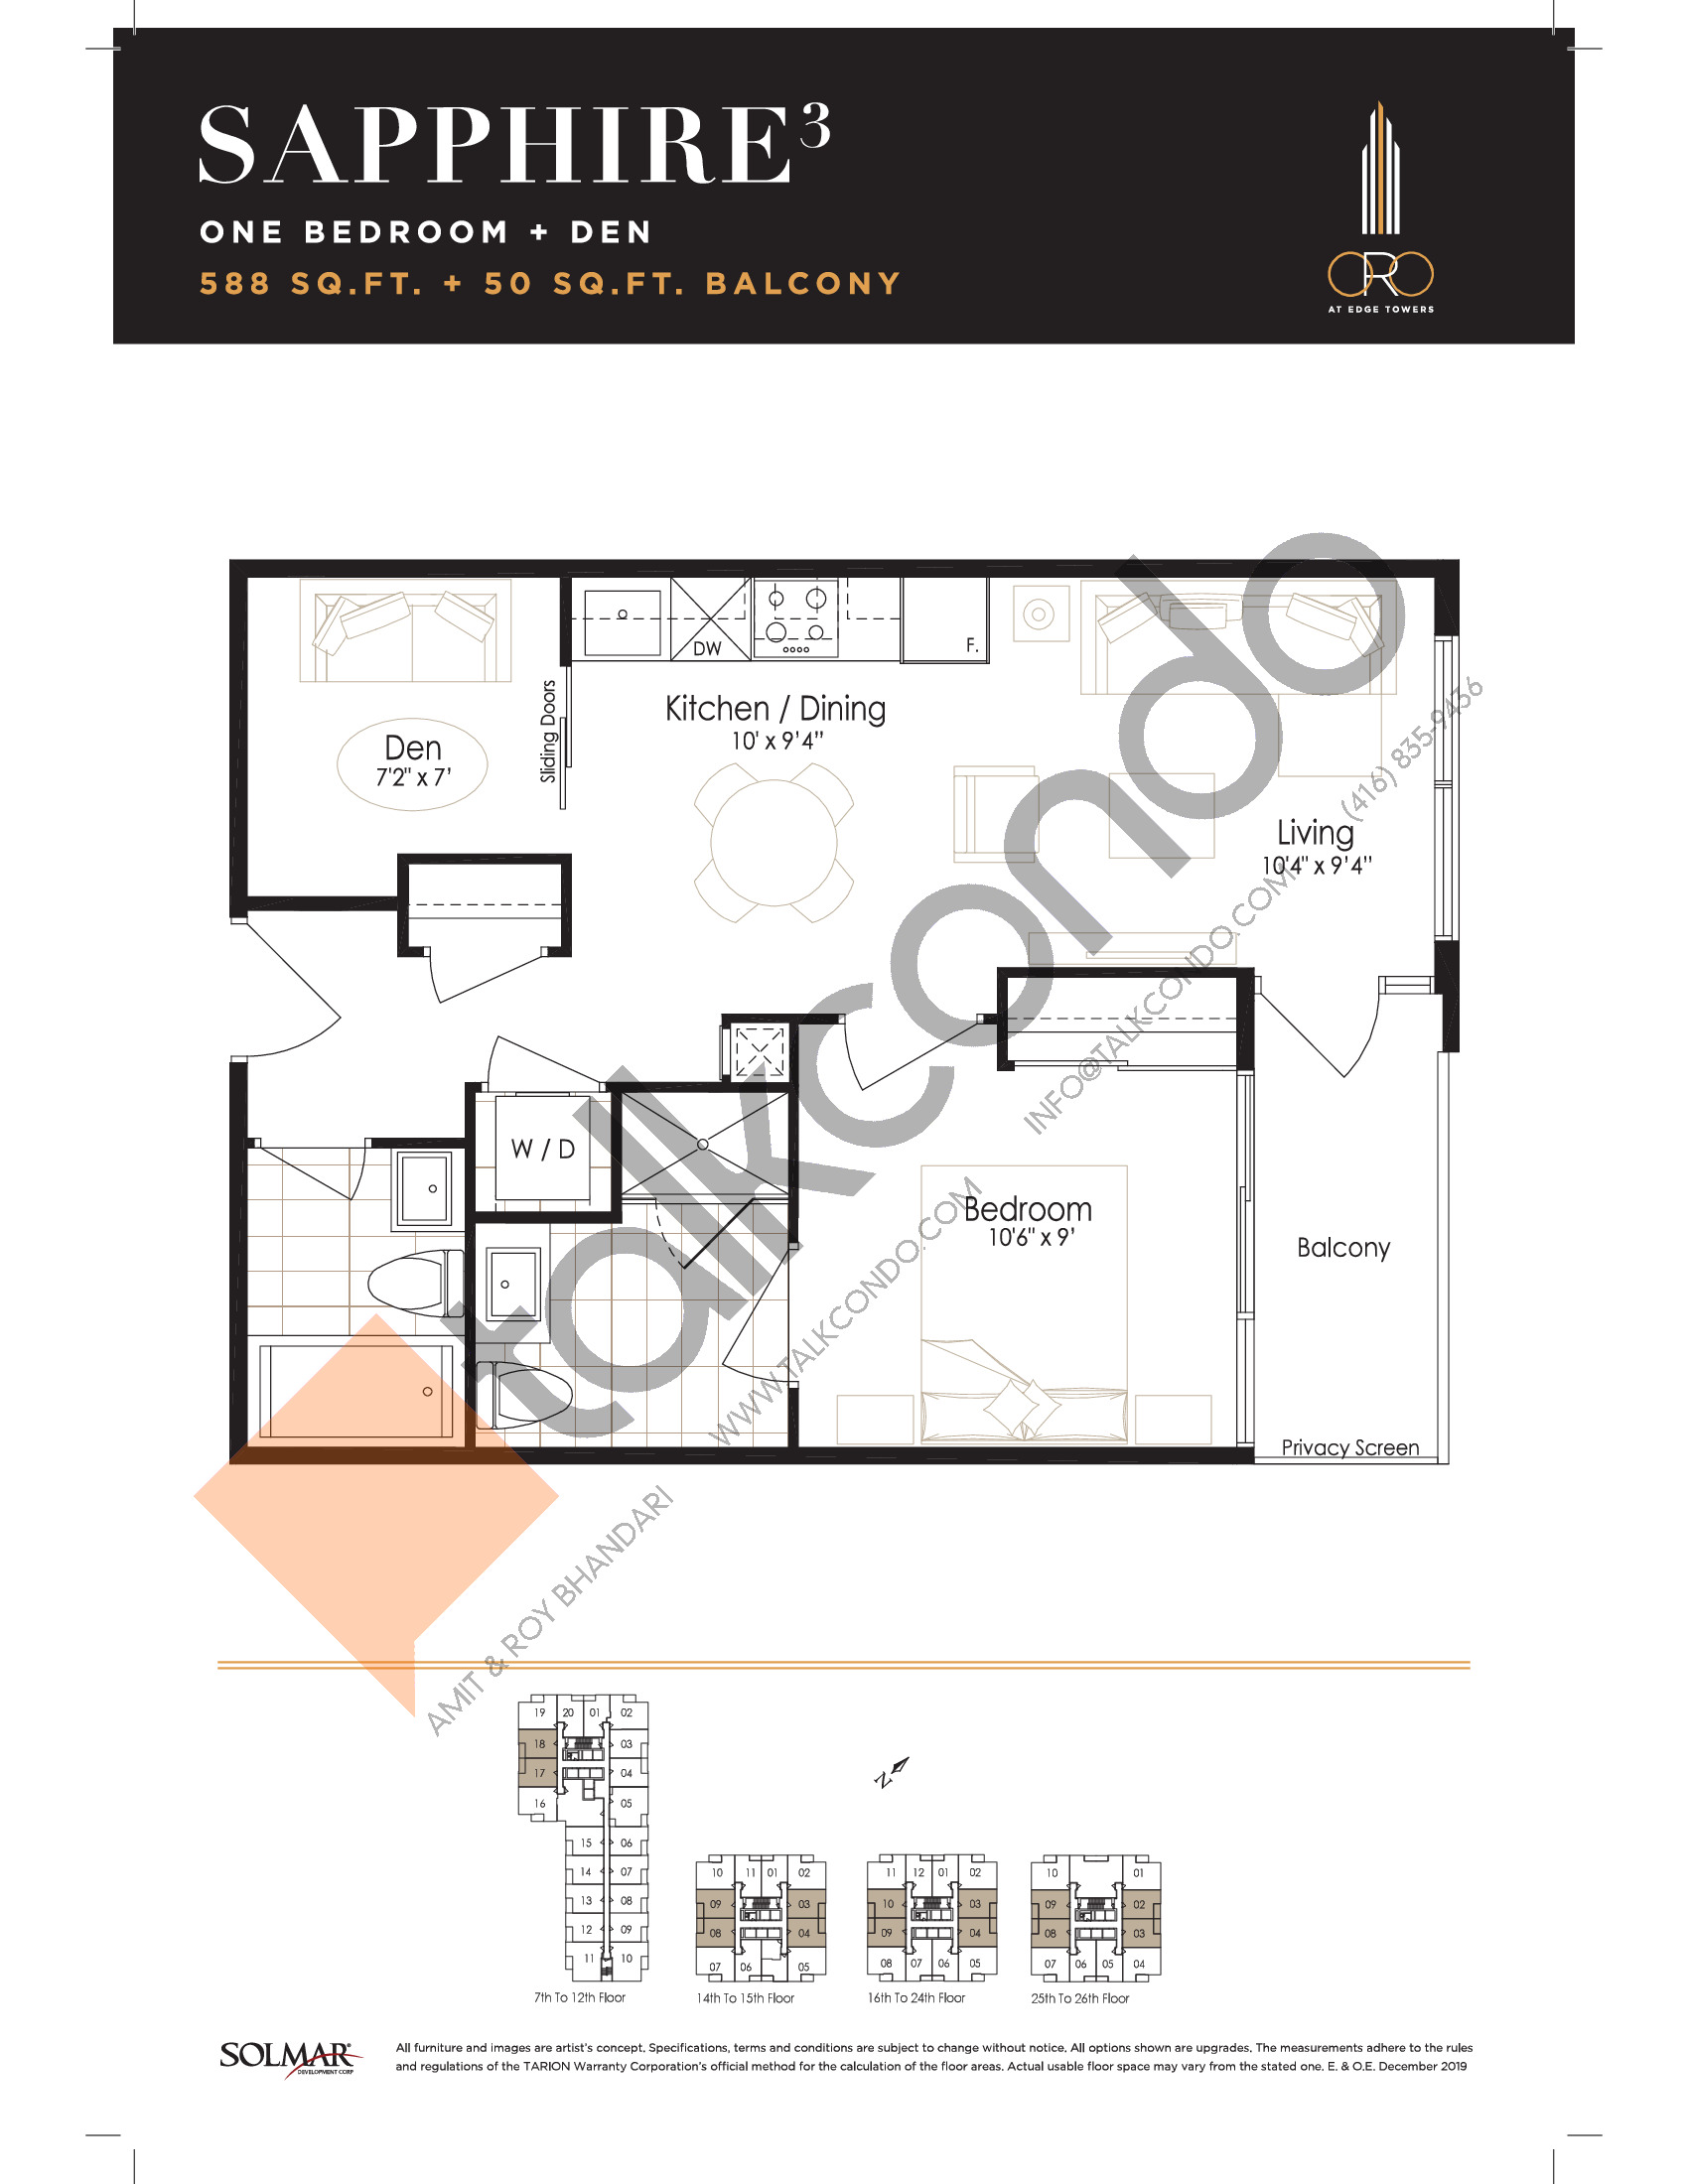 Sapphire Floor Plan at ORO at Edge Towers Condos - 588 sq.ft